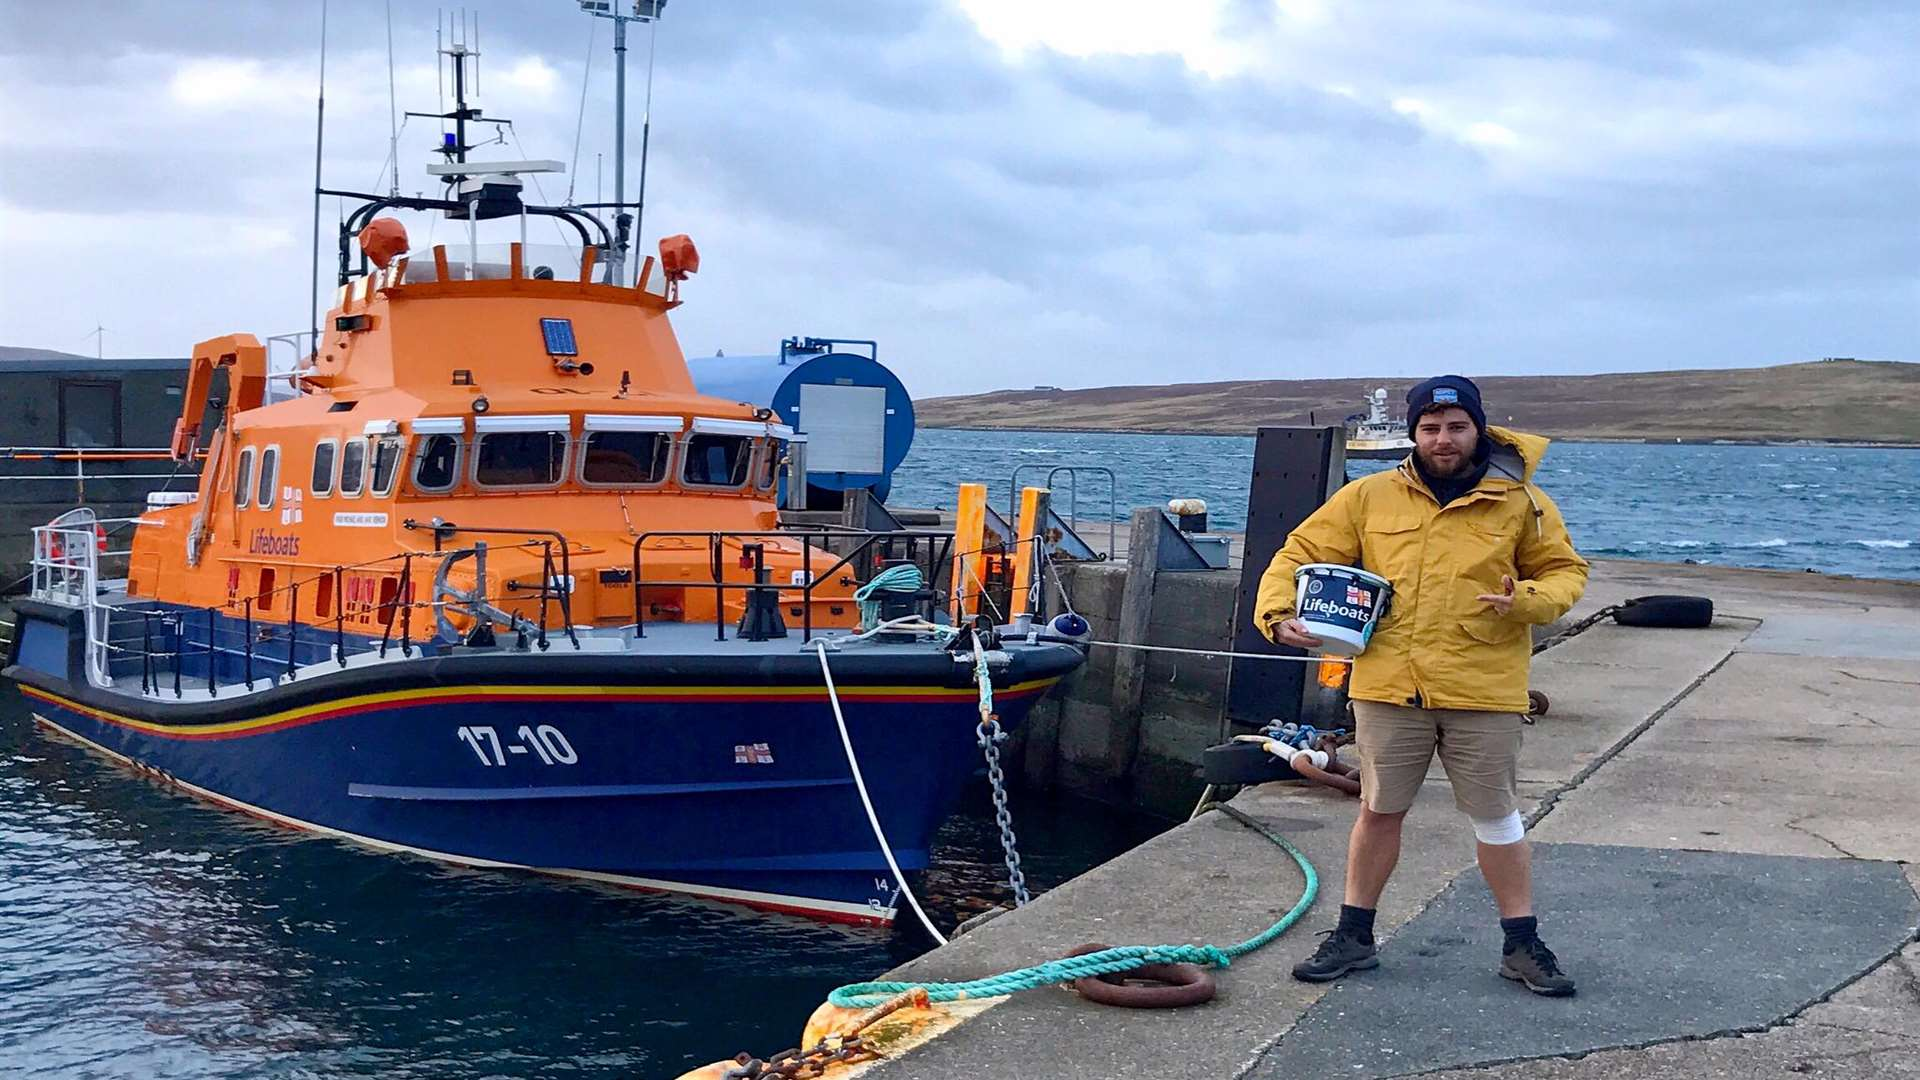 Alex has returned to the same spot he left from. Pic: RNLI